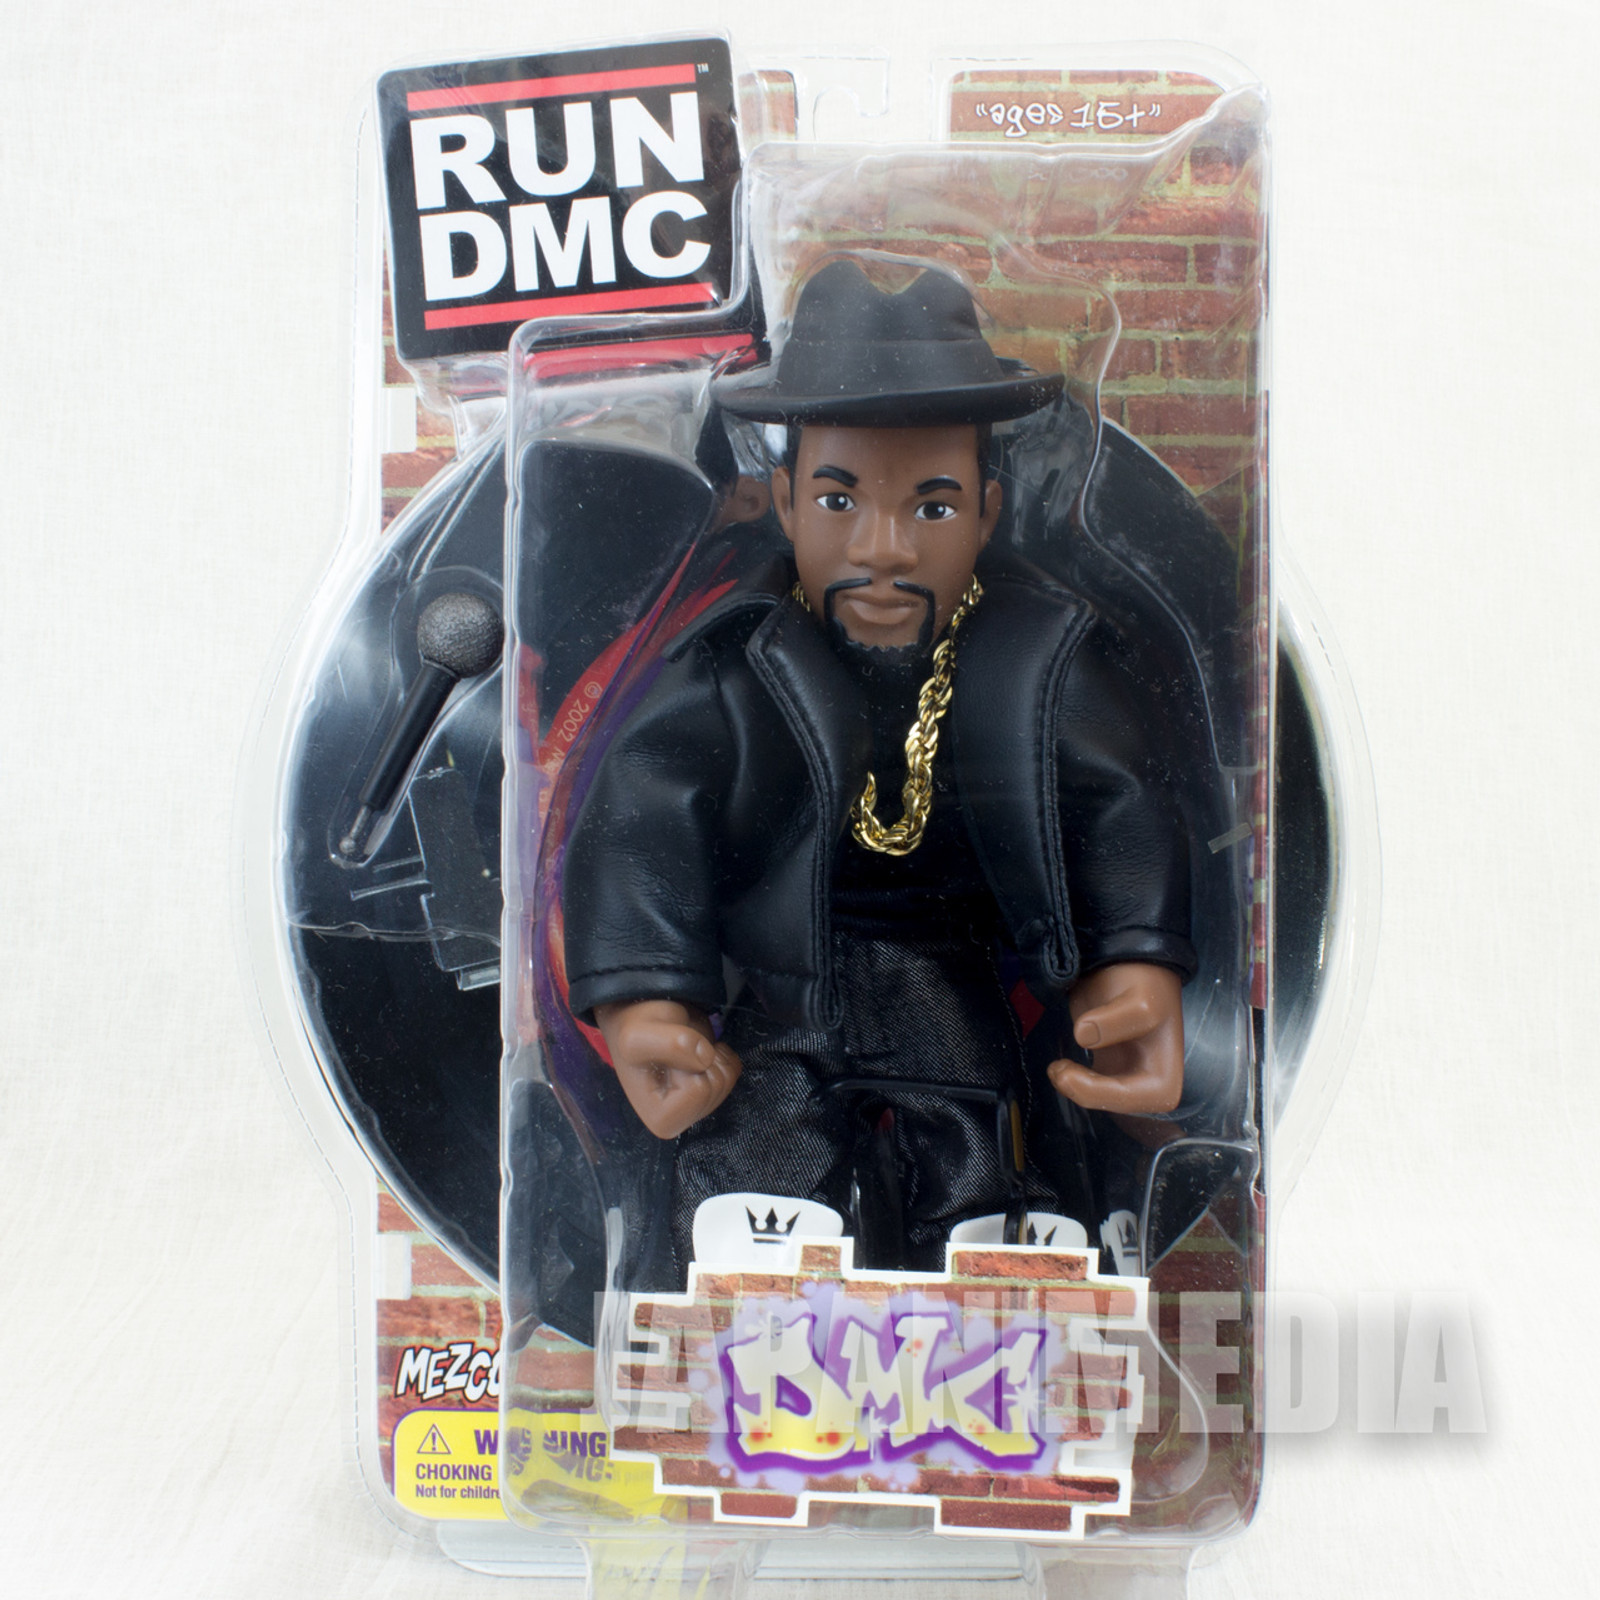 RUN DMC DMC Action Figure Black Clothes Ver. Mezco Toy HIP HOP RAP